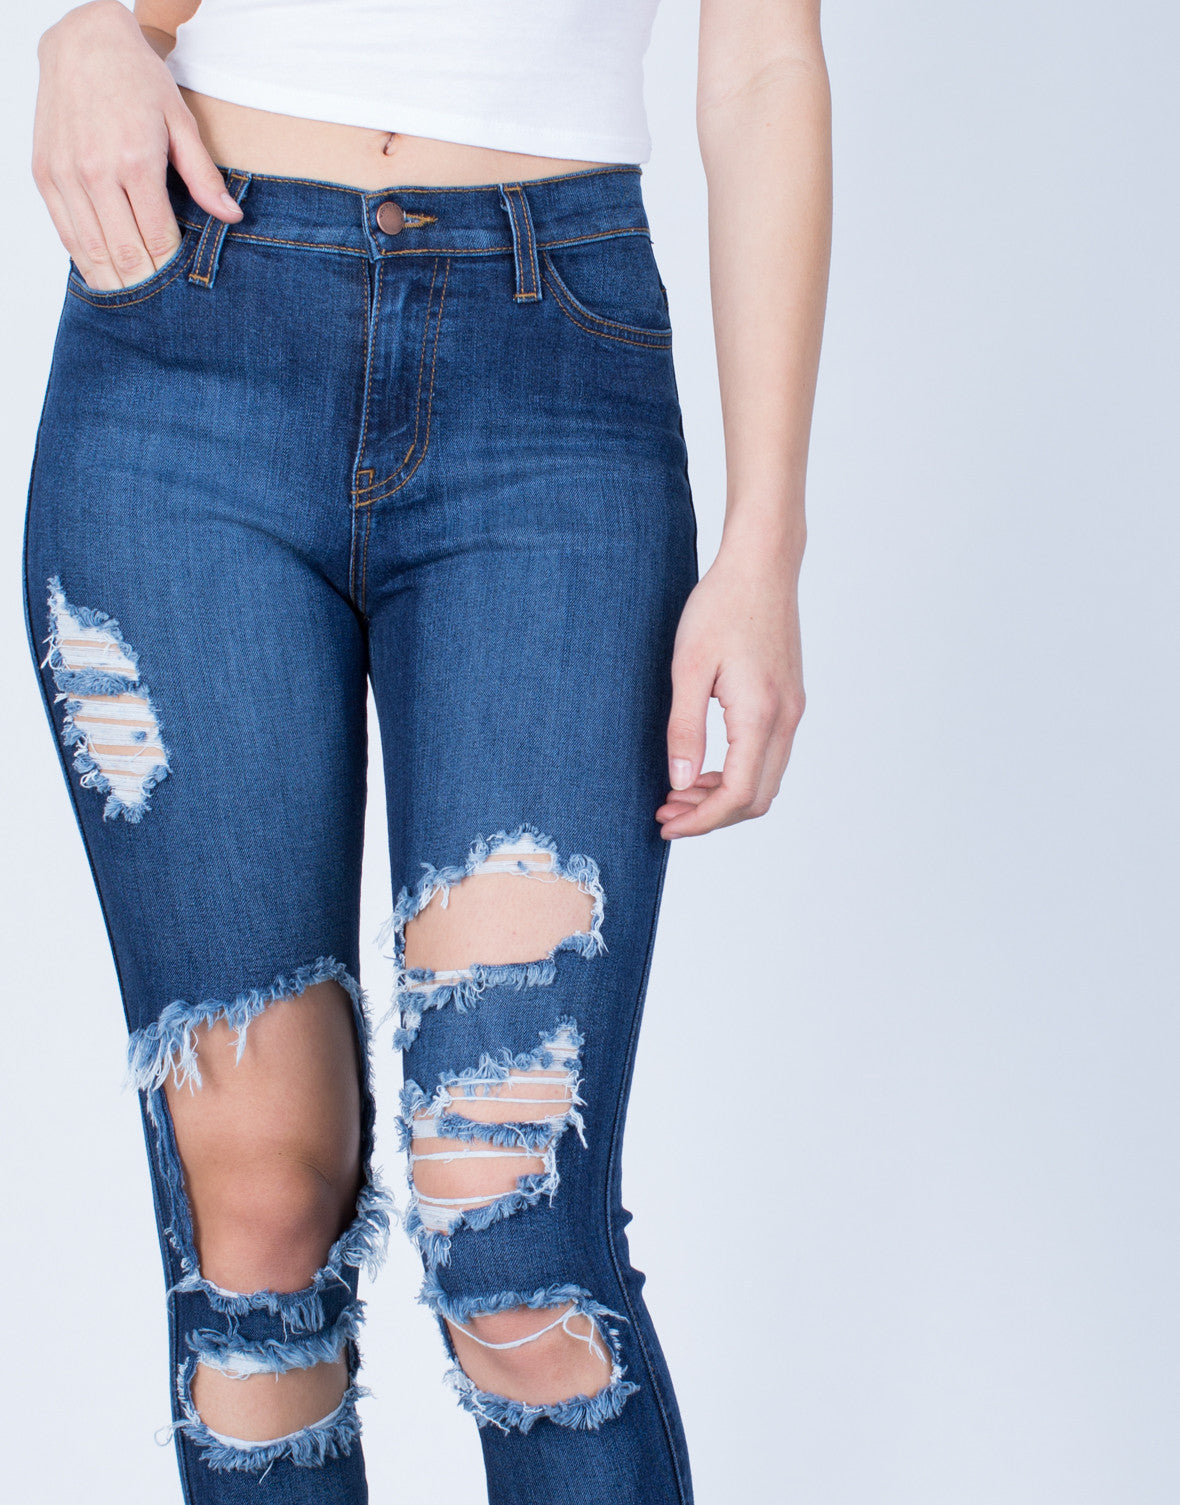 Detail of High Waisted Cuffed Denim Jeans